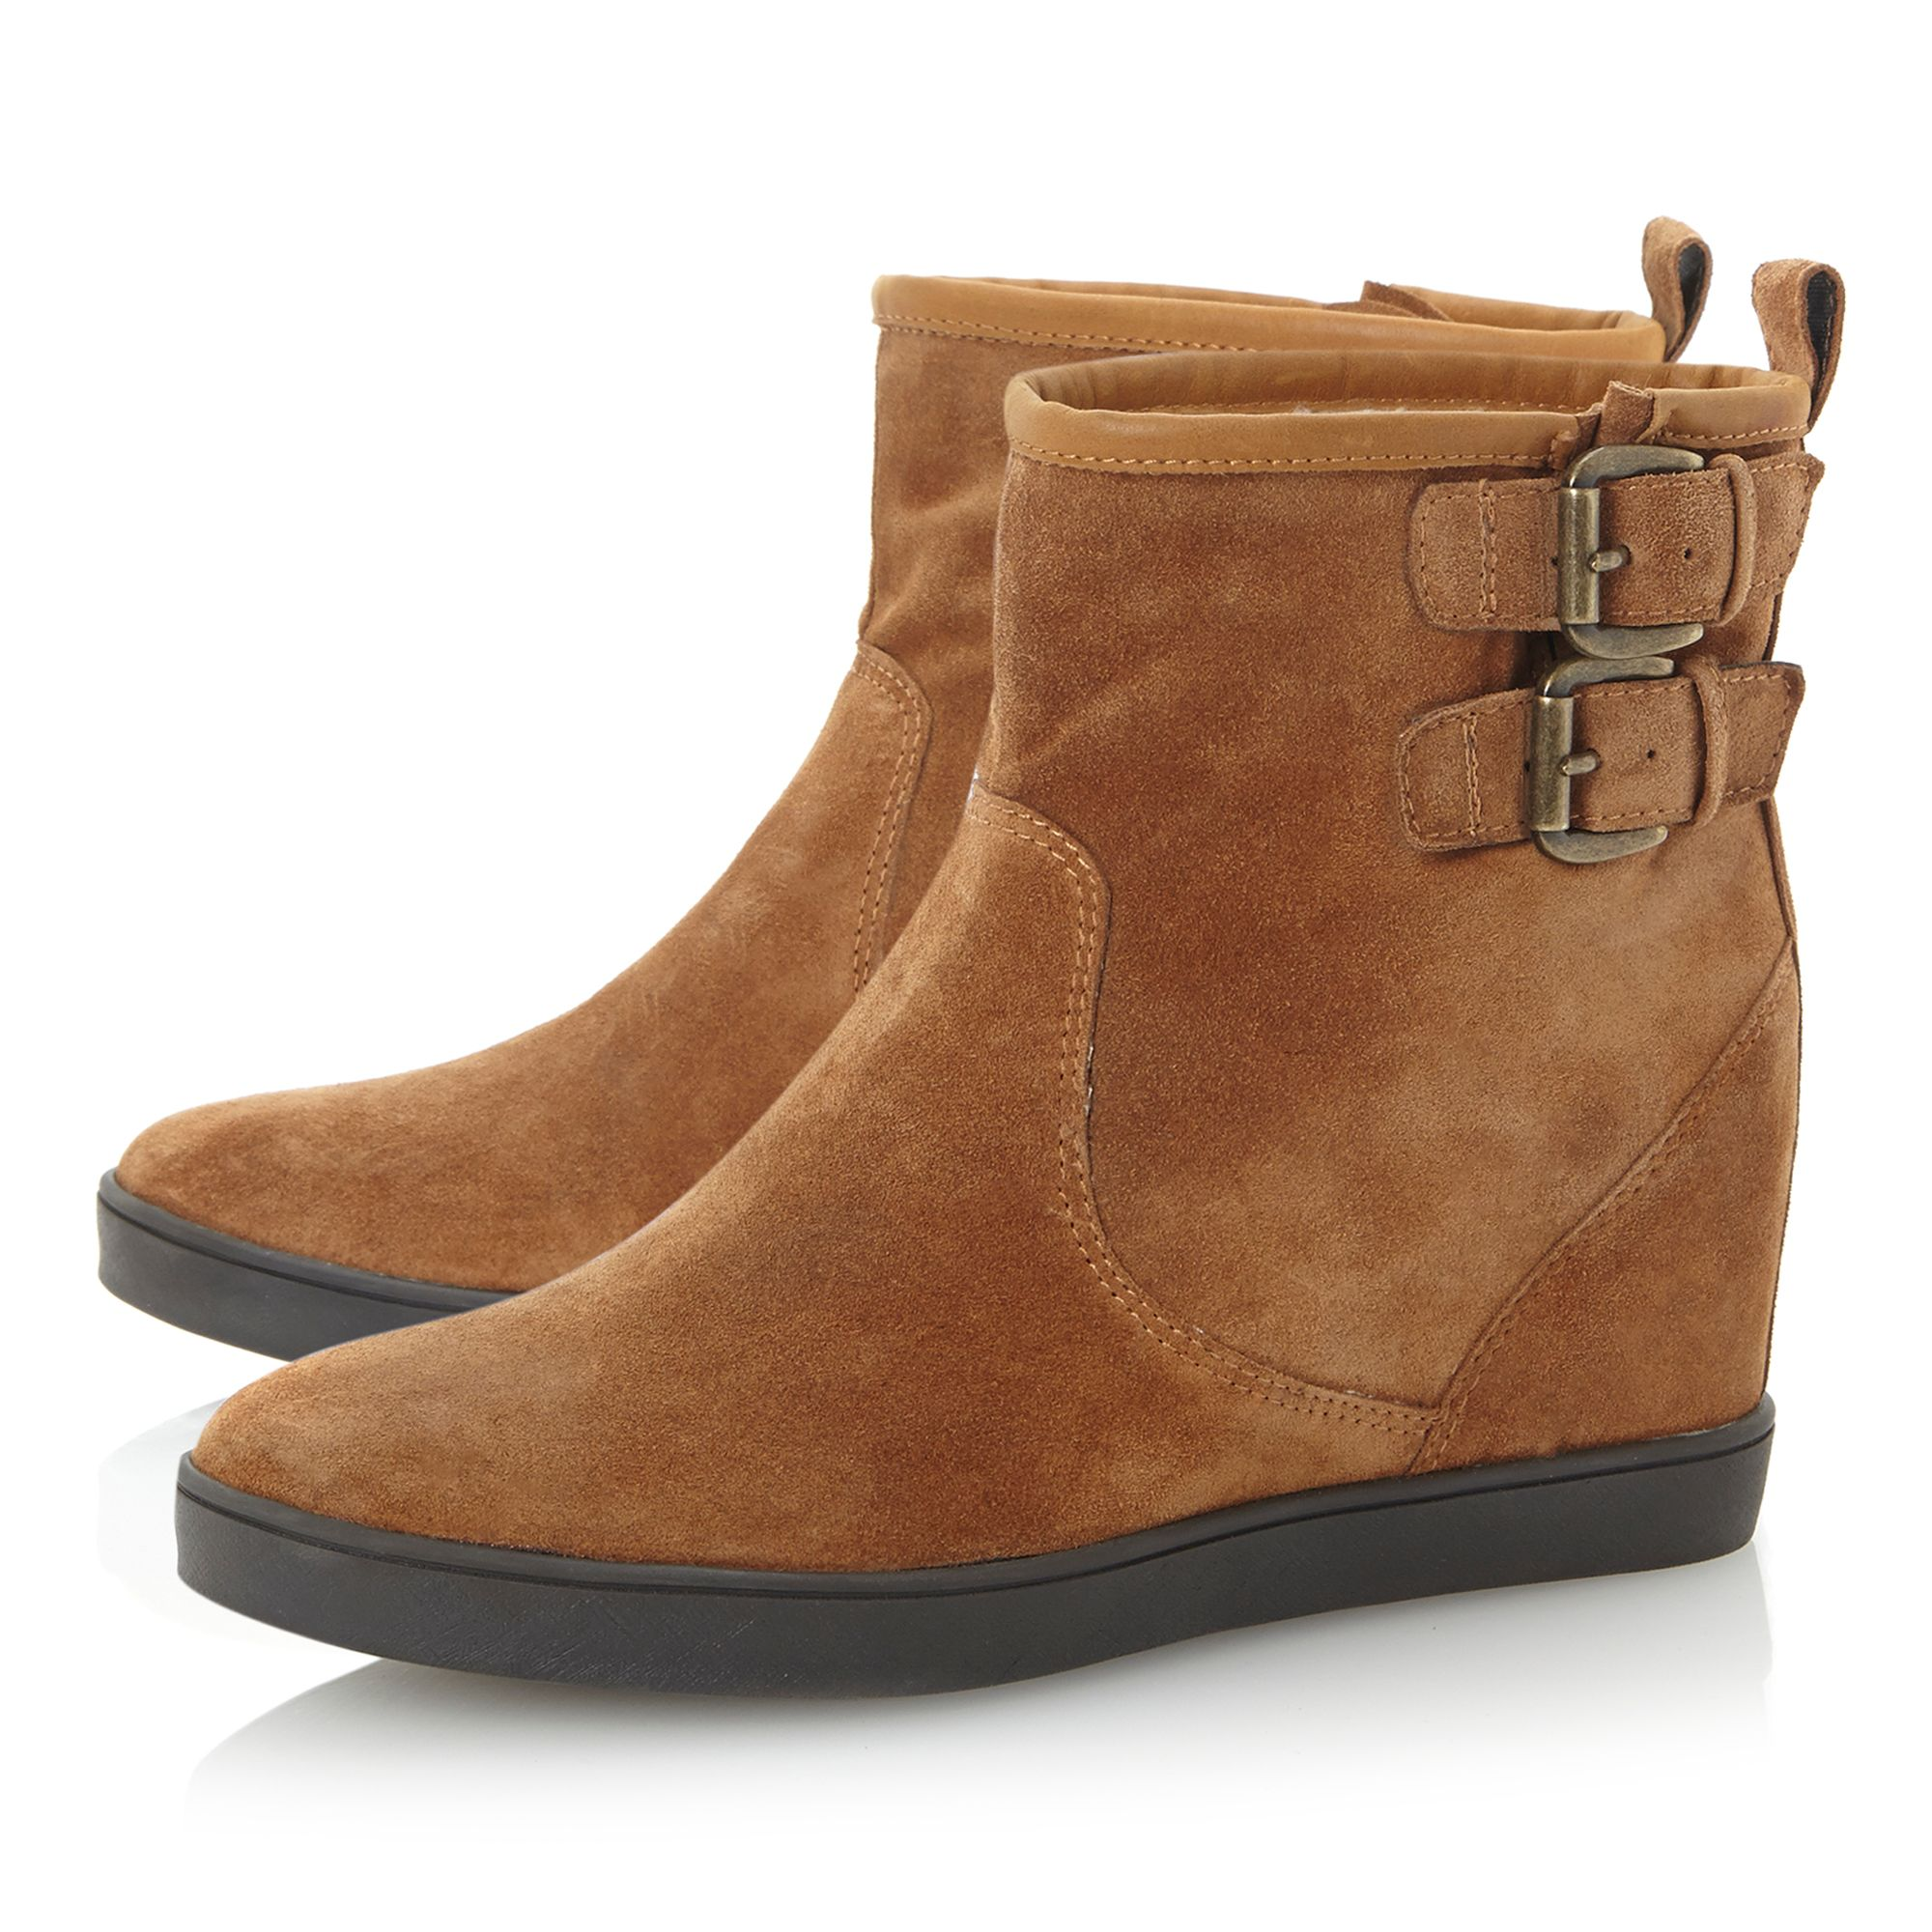 Dune Suede Prowl Concealed Wedge Boots in Tan (Brown)